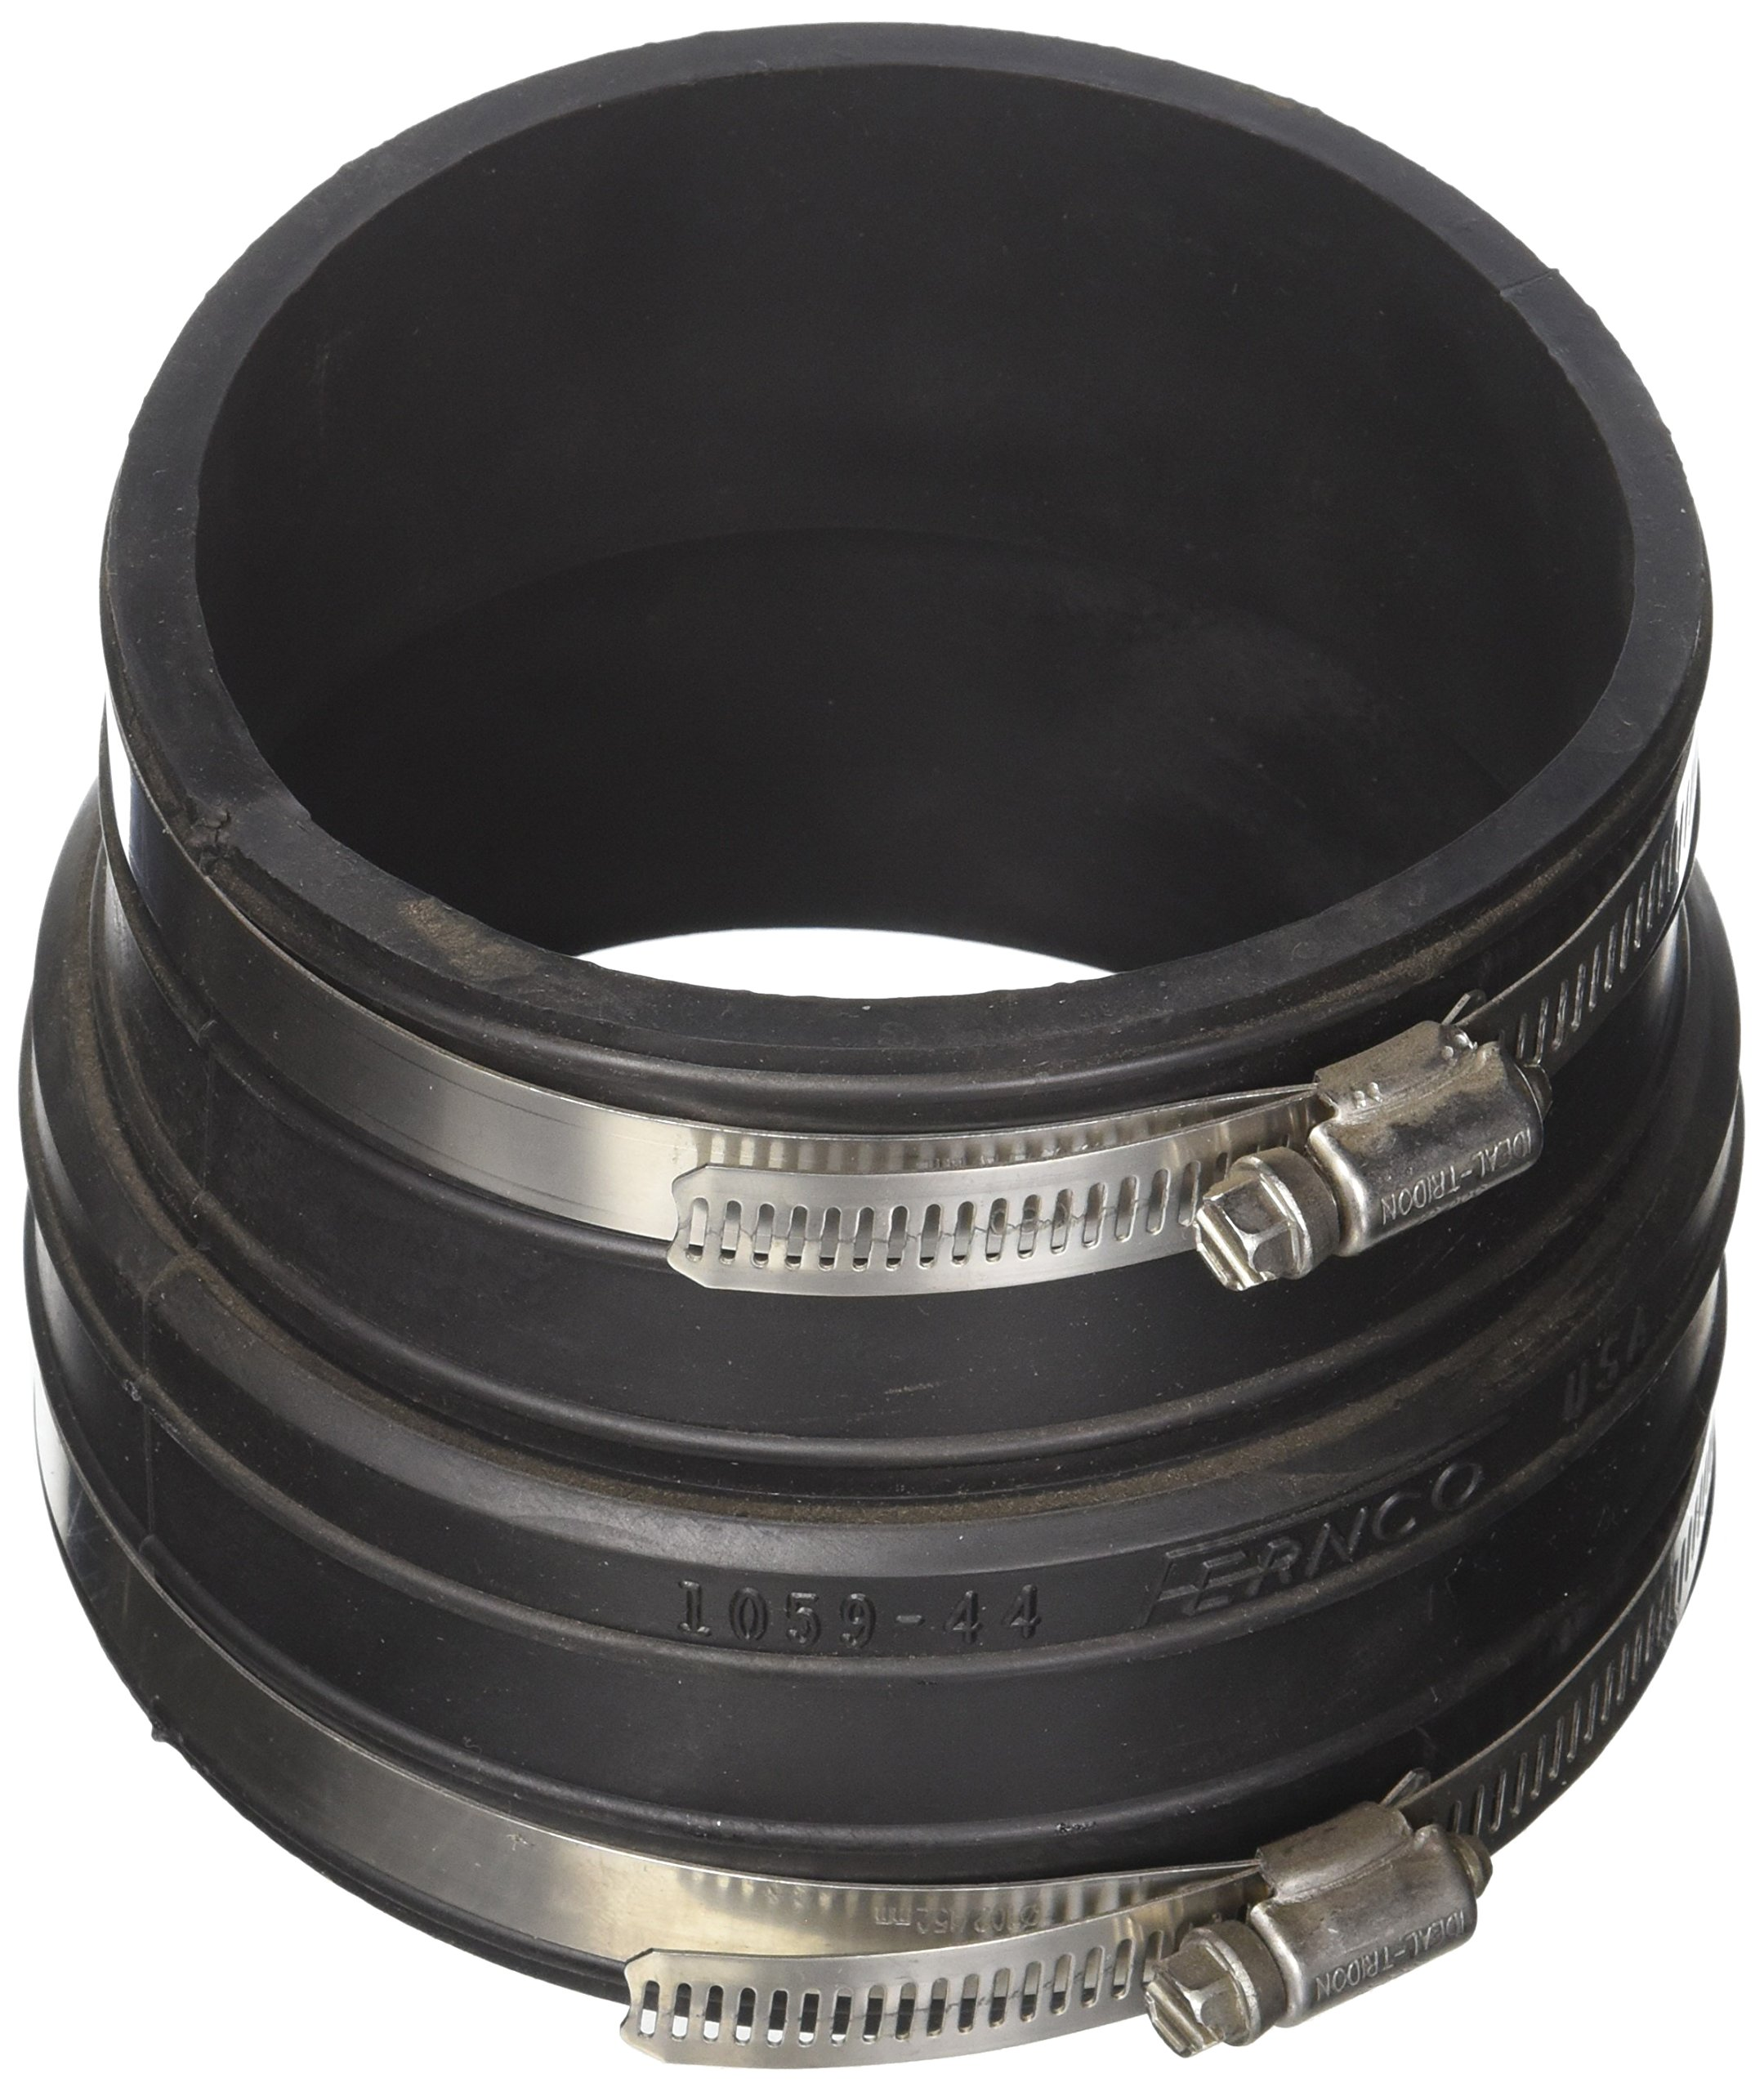 Fernco P1059-44 4-Inch by 4-Inch Rubber Flexible Coupling Repair Fitting